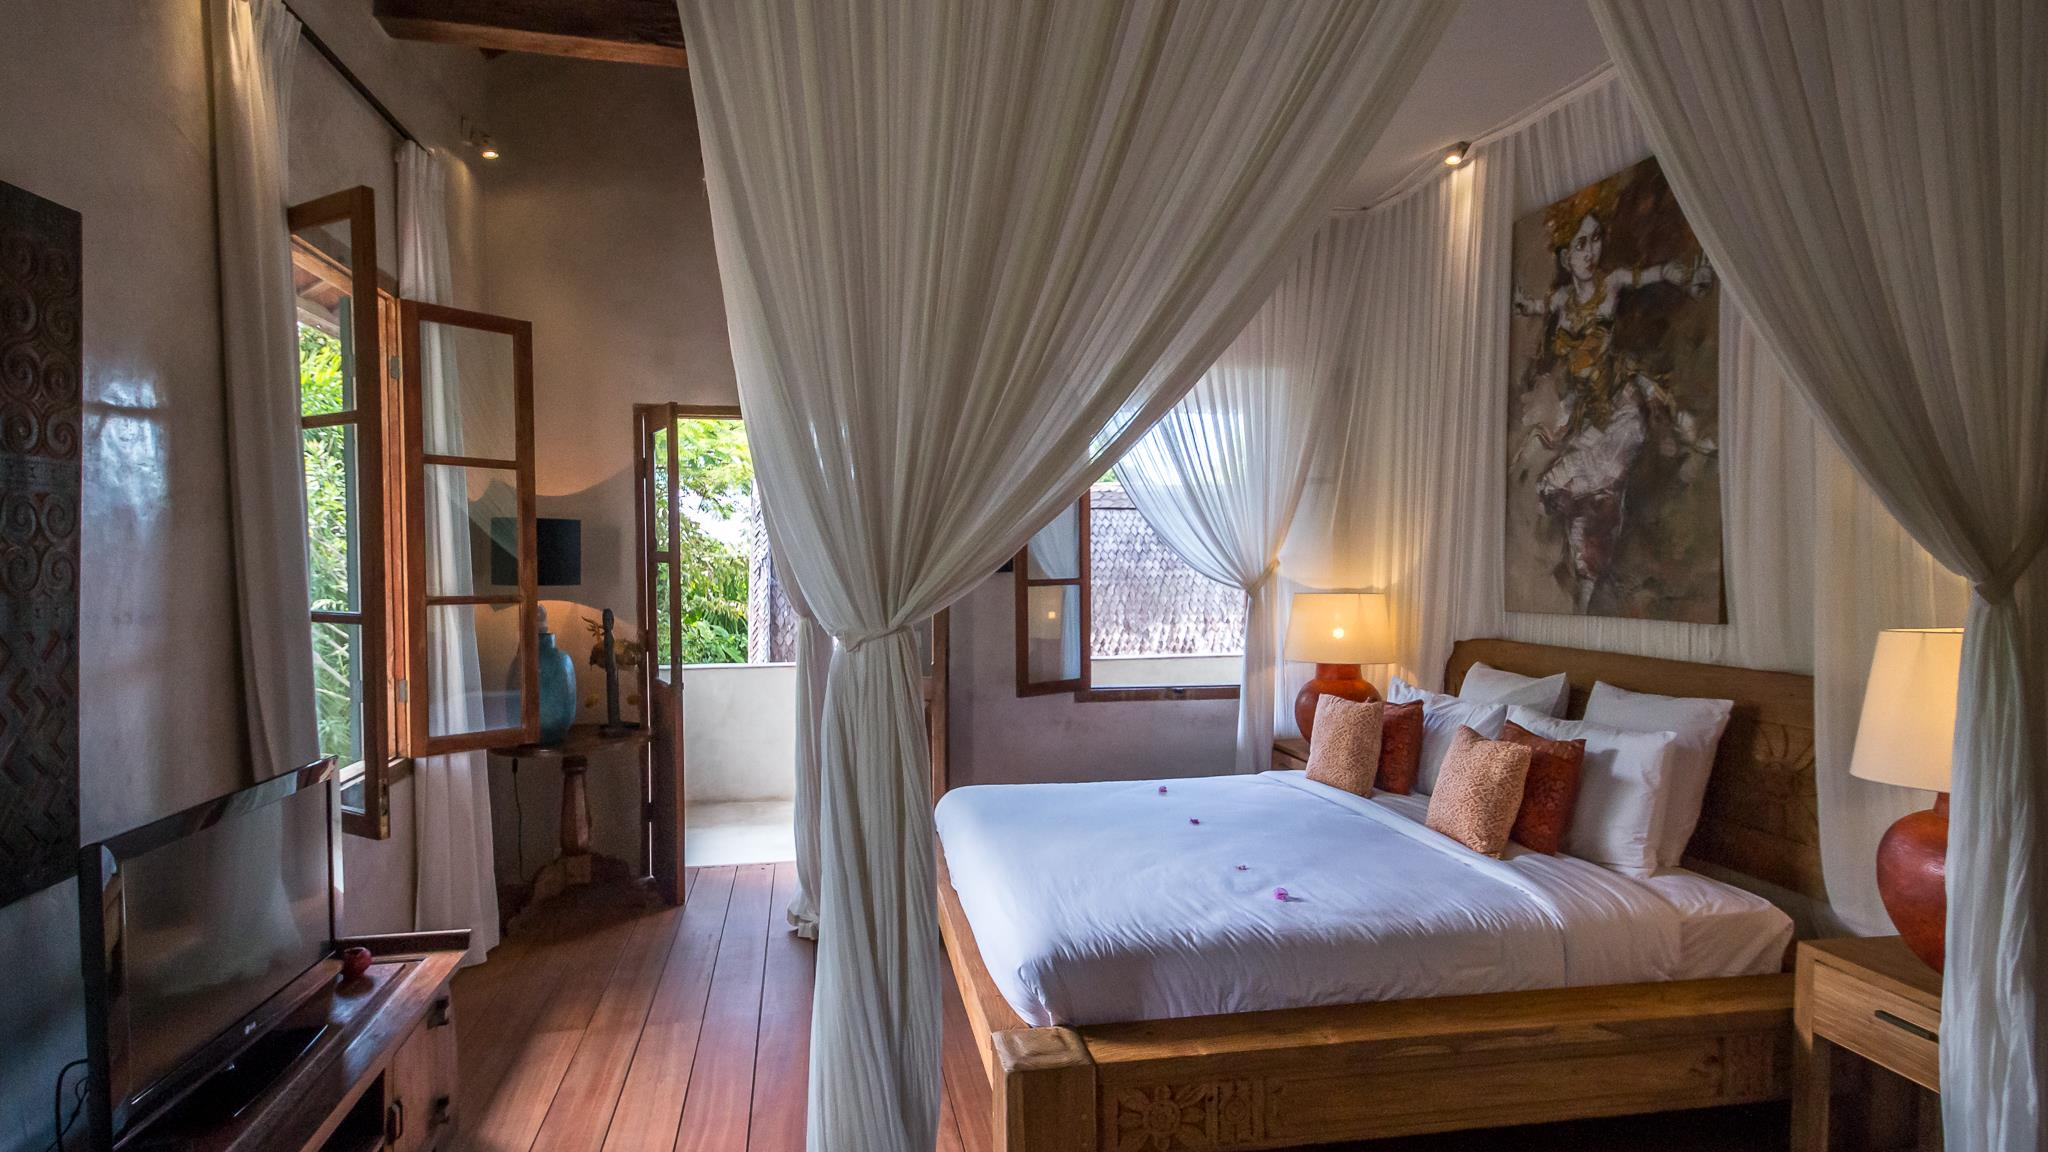 Bedroom with Table Lamps - Villa Galante - Umalas, Bali